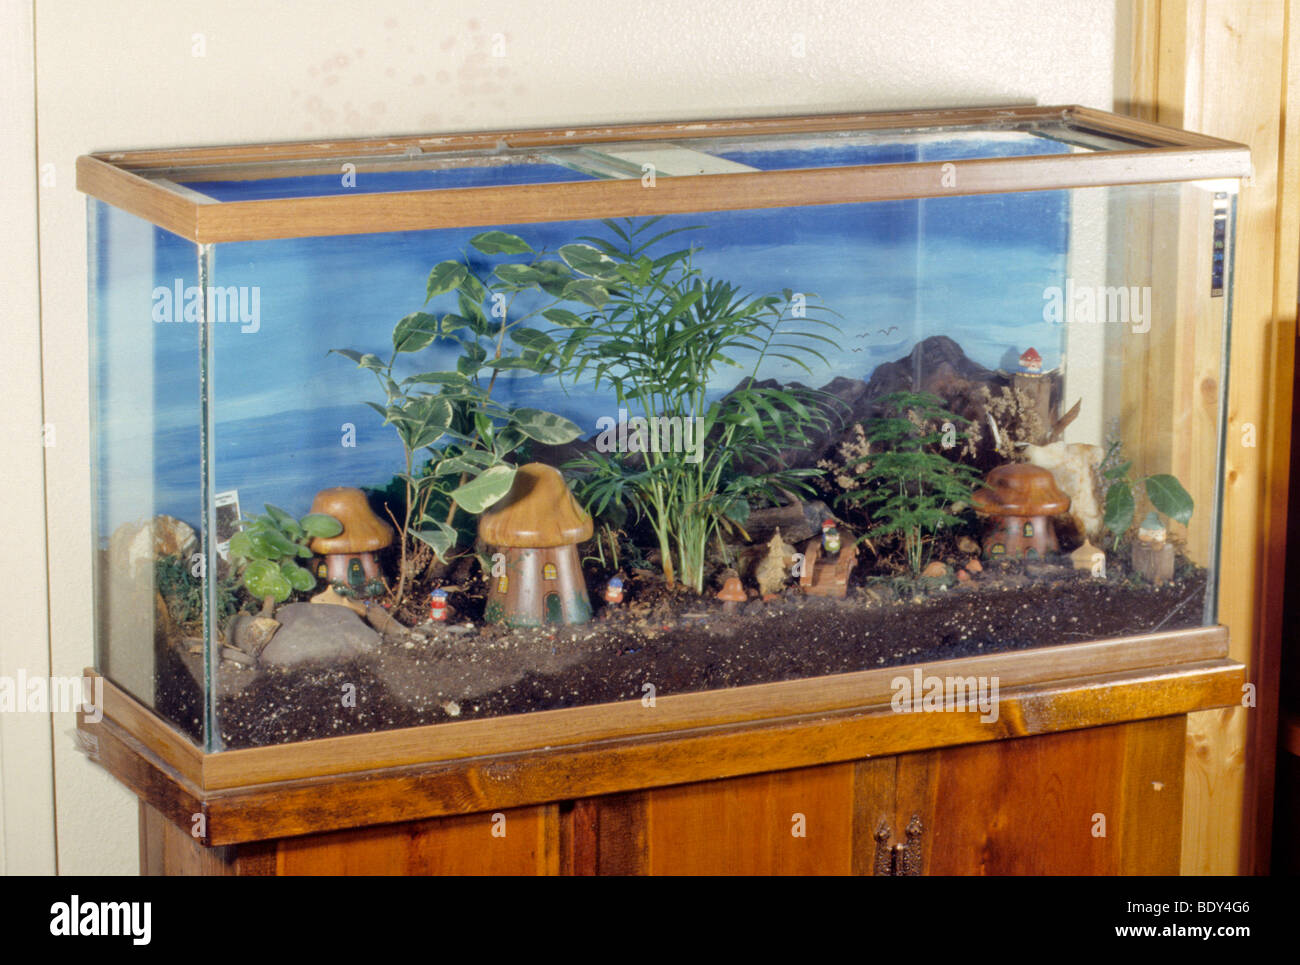 Small Colorful Fish Drift Around Small Model Houses And Plants In